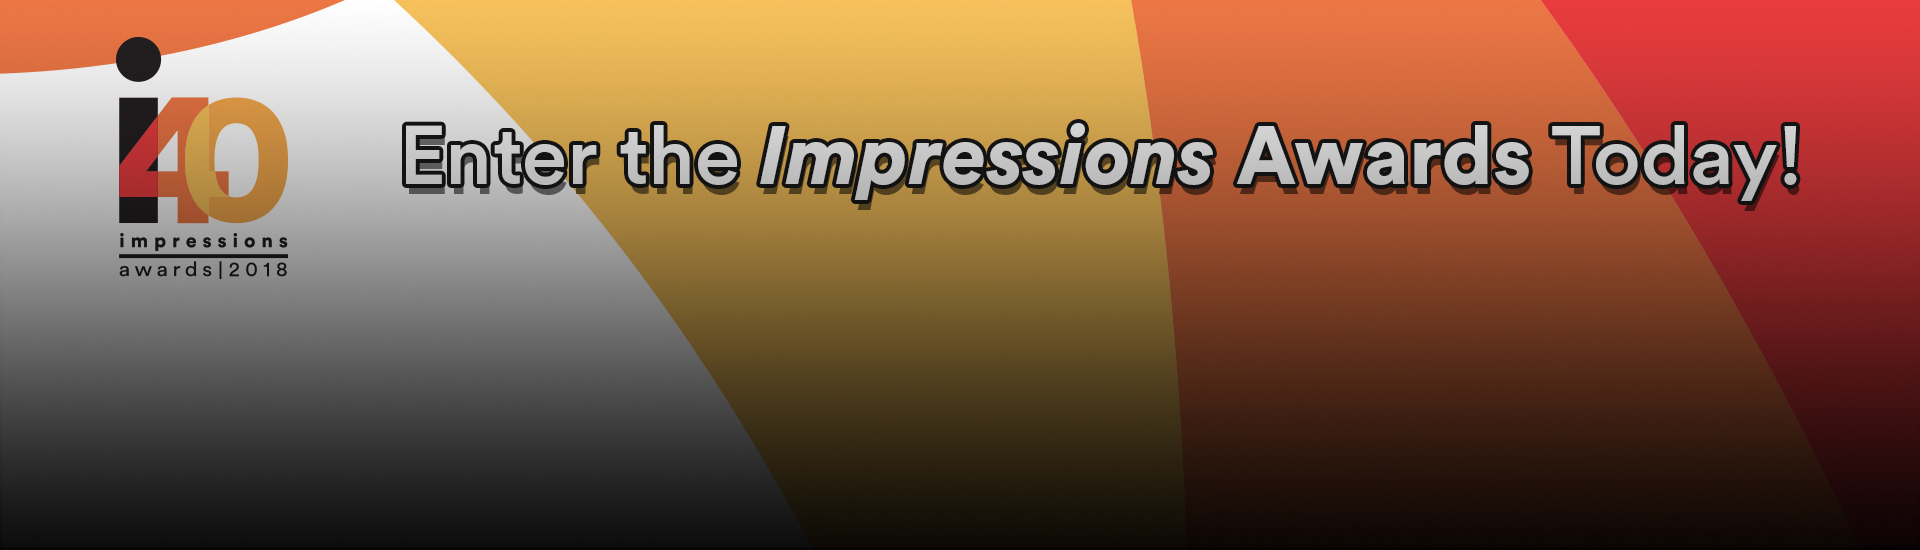 <h2><a href='http://impressionsmag.wpengine.com/news/industry/enter-the-2018-impressions-awards-new-prizes-announced/' style='color: inherit; text-decoration:none;font:inherit;'>Enter the 40th Annual Impressions Awards!</a> <hr></h2><p>  <a href='http://impressionsmag.wpengine.com/news/industry/enter-the-2018-impressions-awards-new-prizes-announced/' style='color: inherit; text-decoration:none; font-weight:700;font-size:24px;'>The industry&#039;s most prestigious competition now includes new prizes for winners. Click here for more information.</a></p>